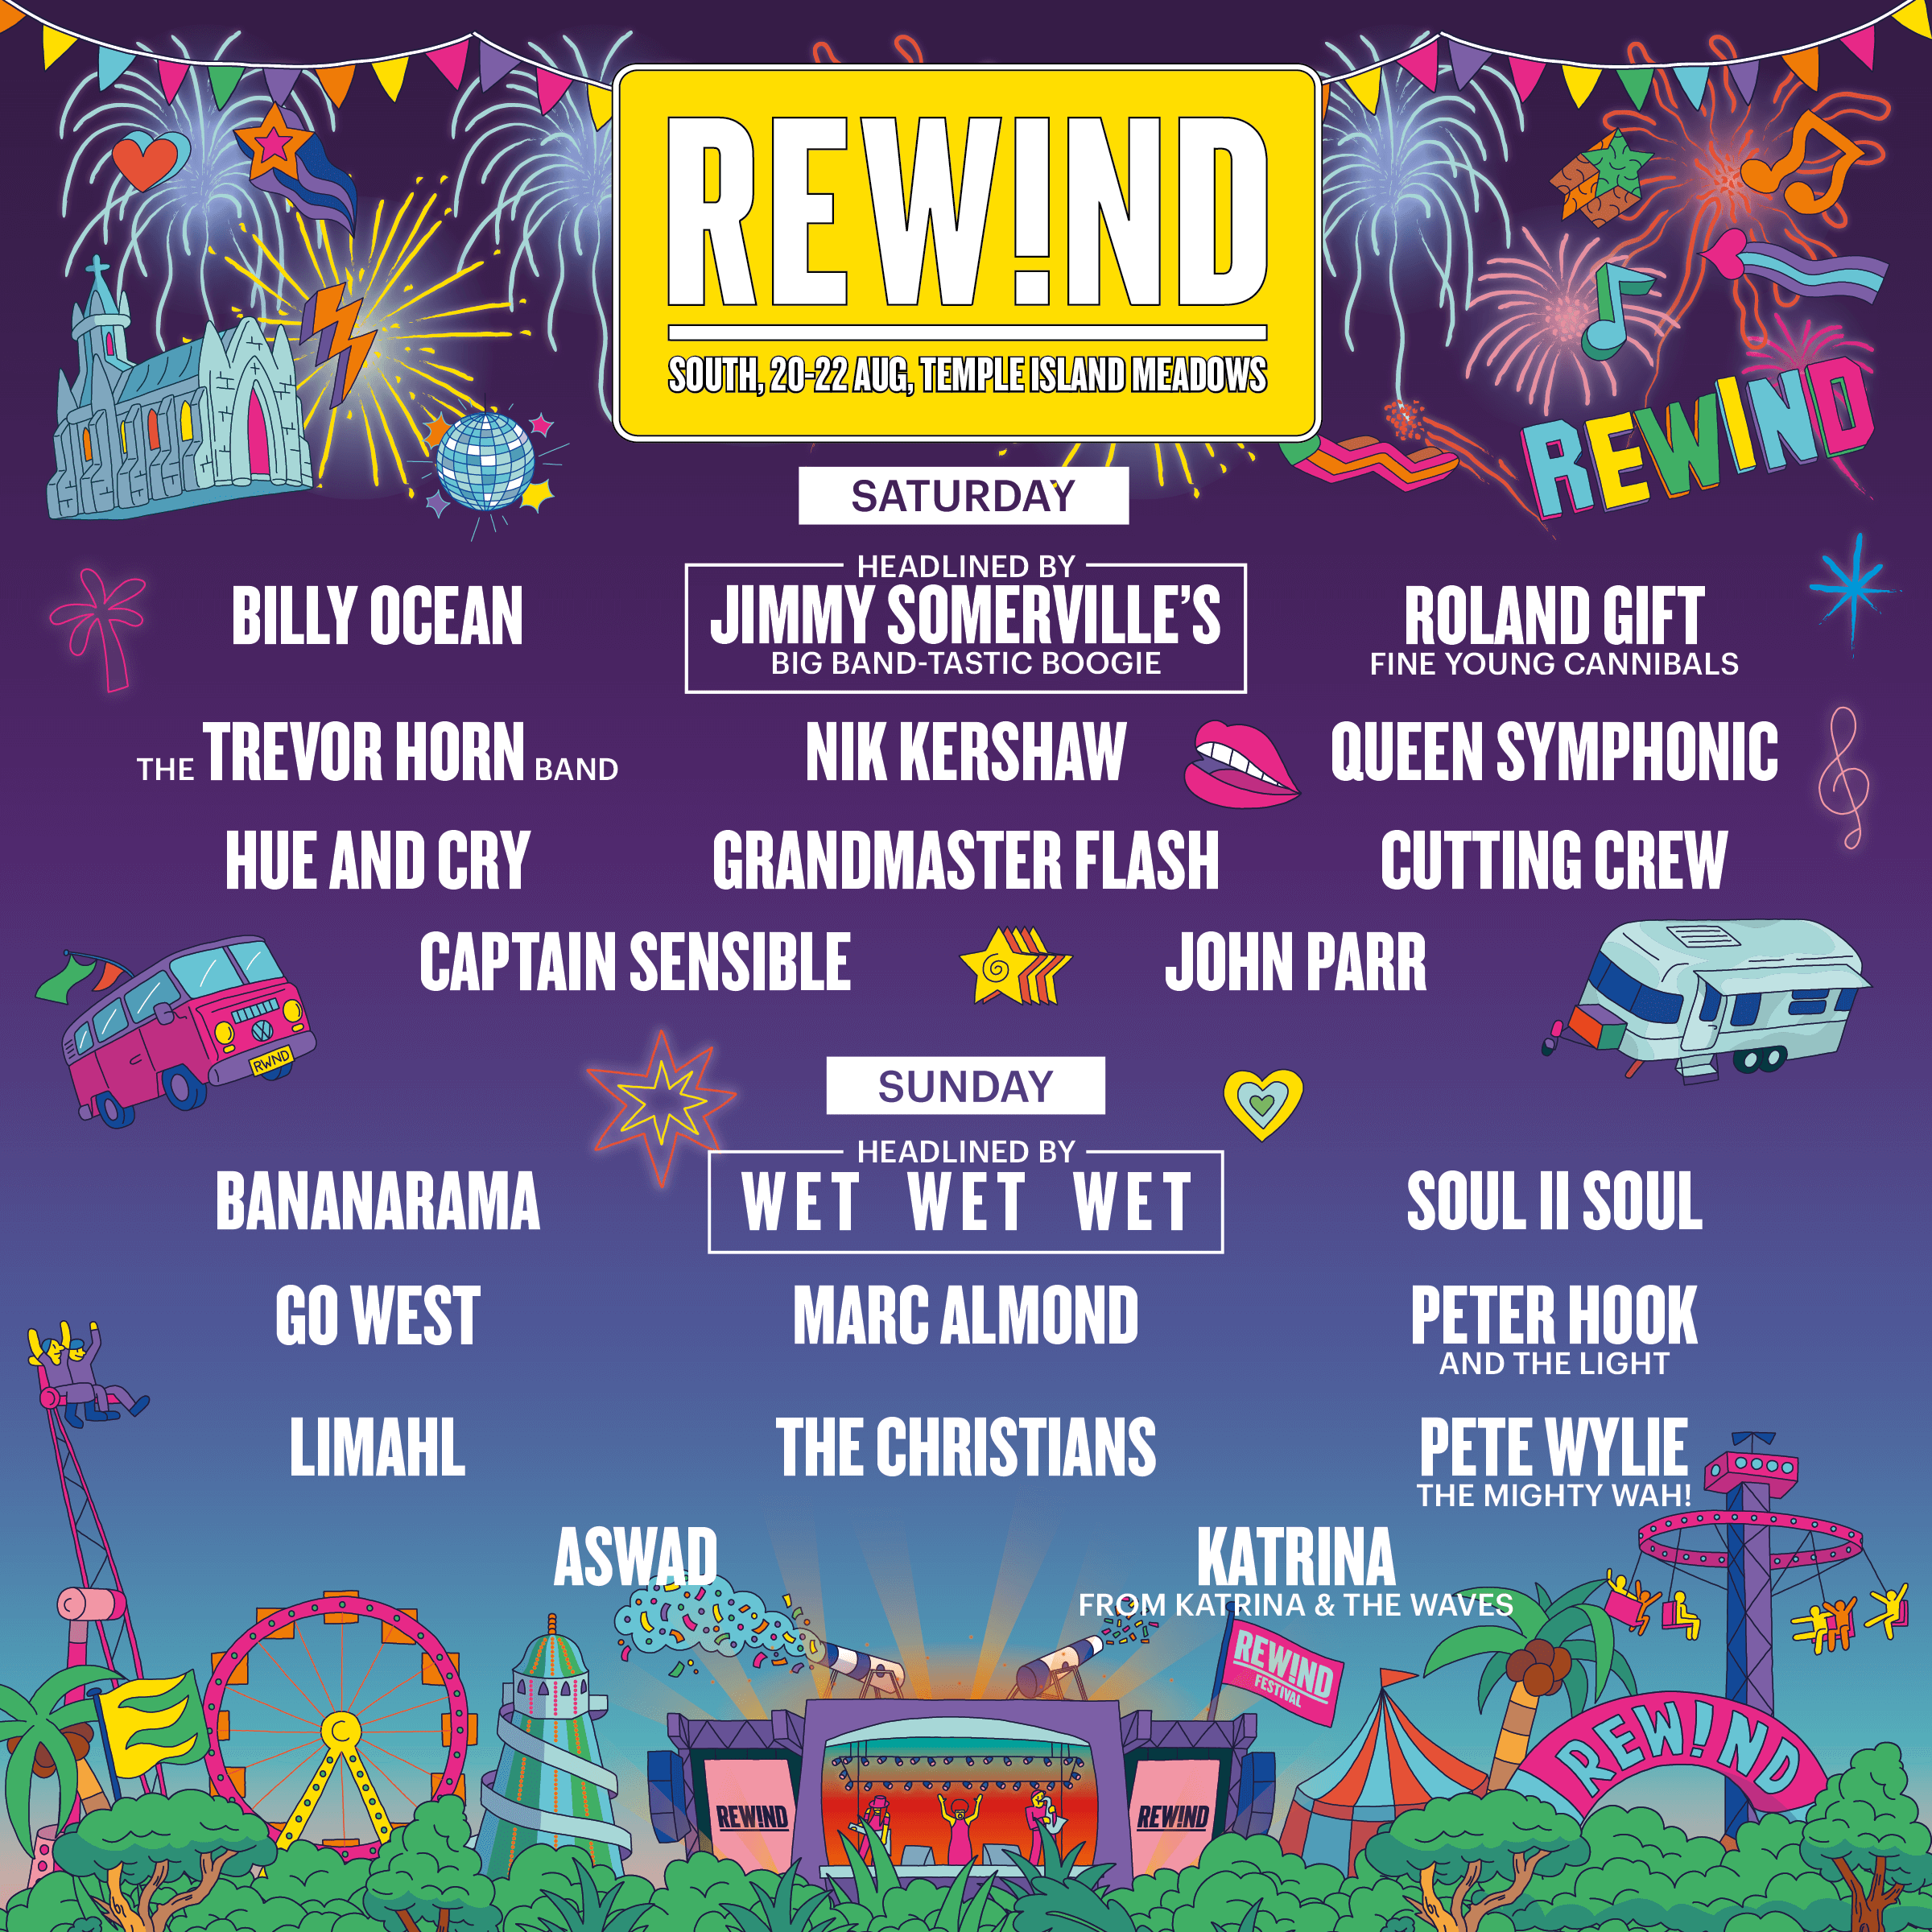 Rewind Festival South 2021 Poster